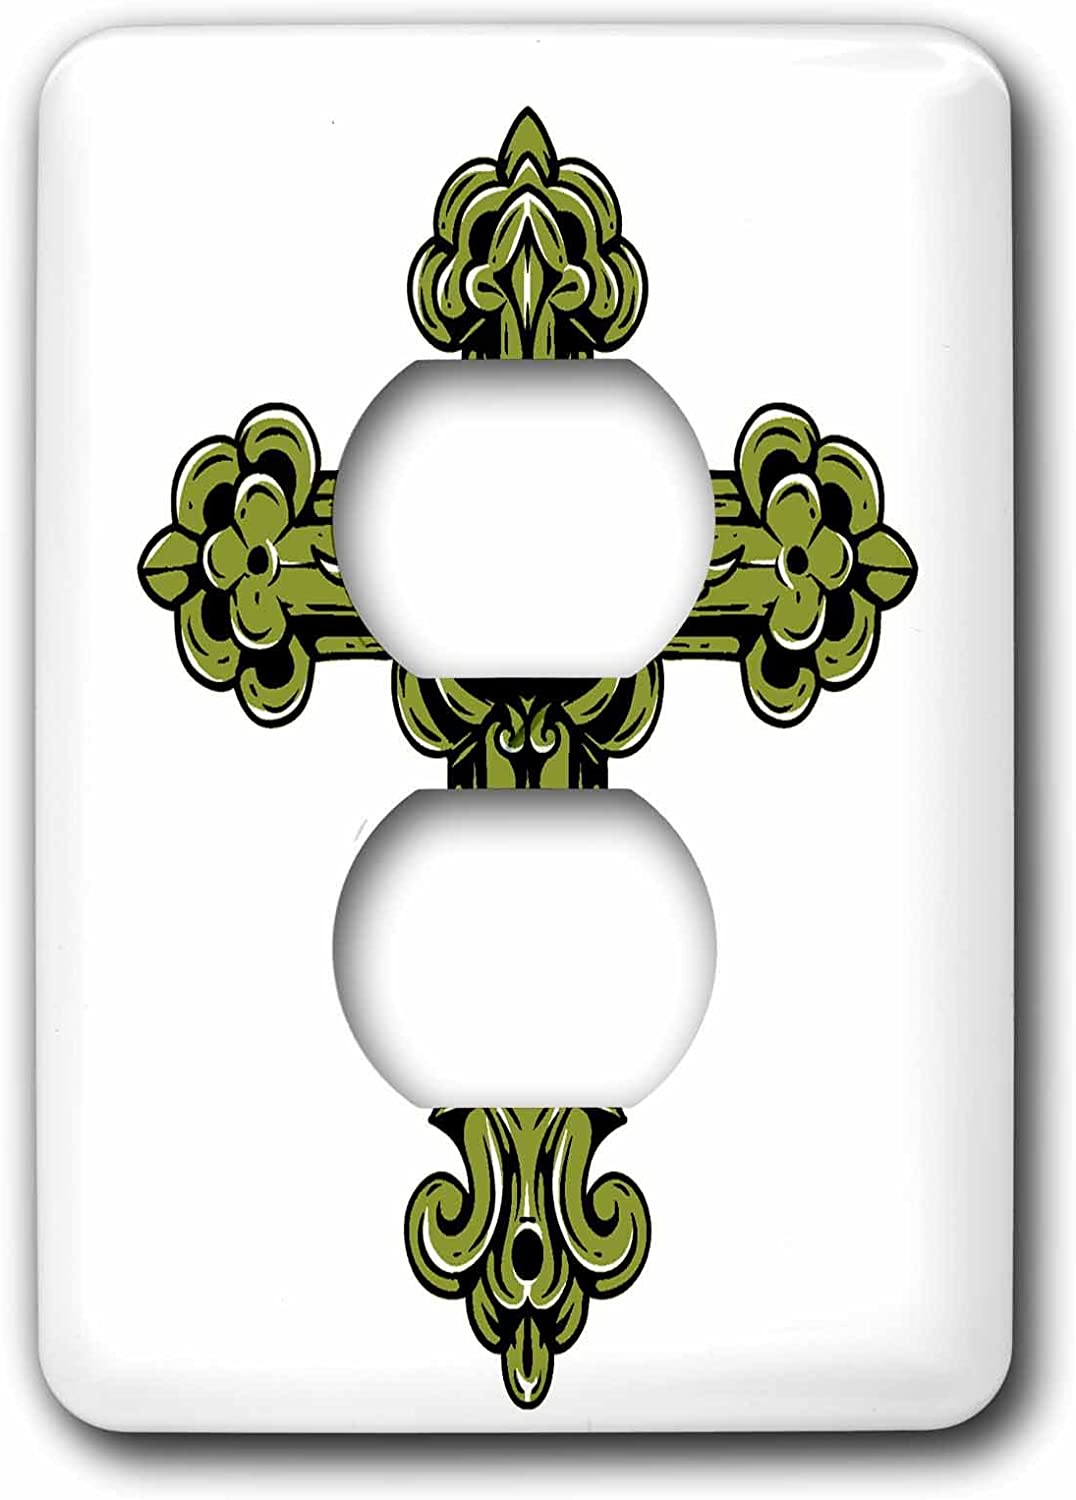 3drose Lsp 78343 6 Green Decorative Religious Cross Light Switch Cover Outlet Plates Amazon Com